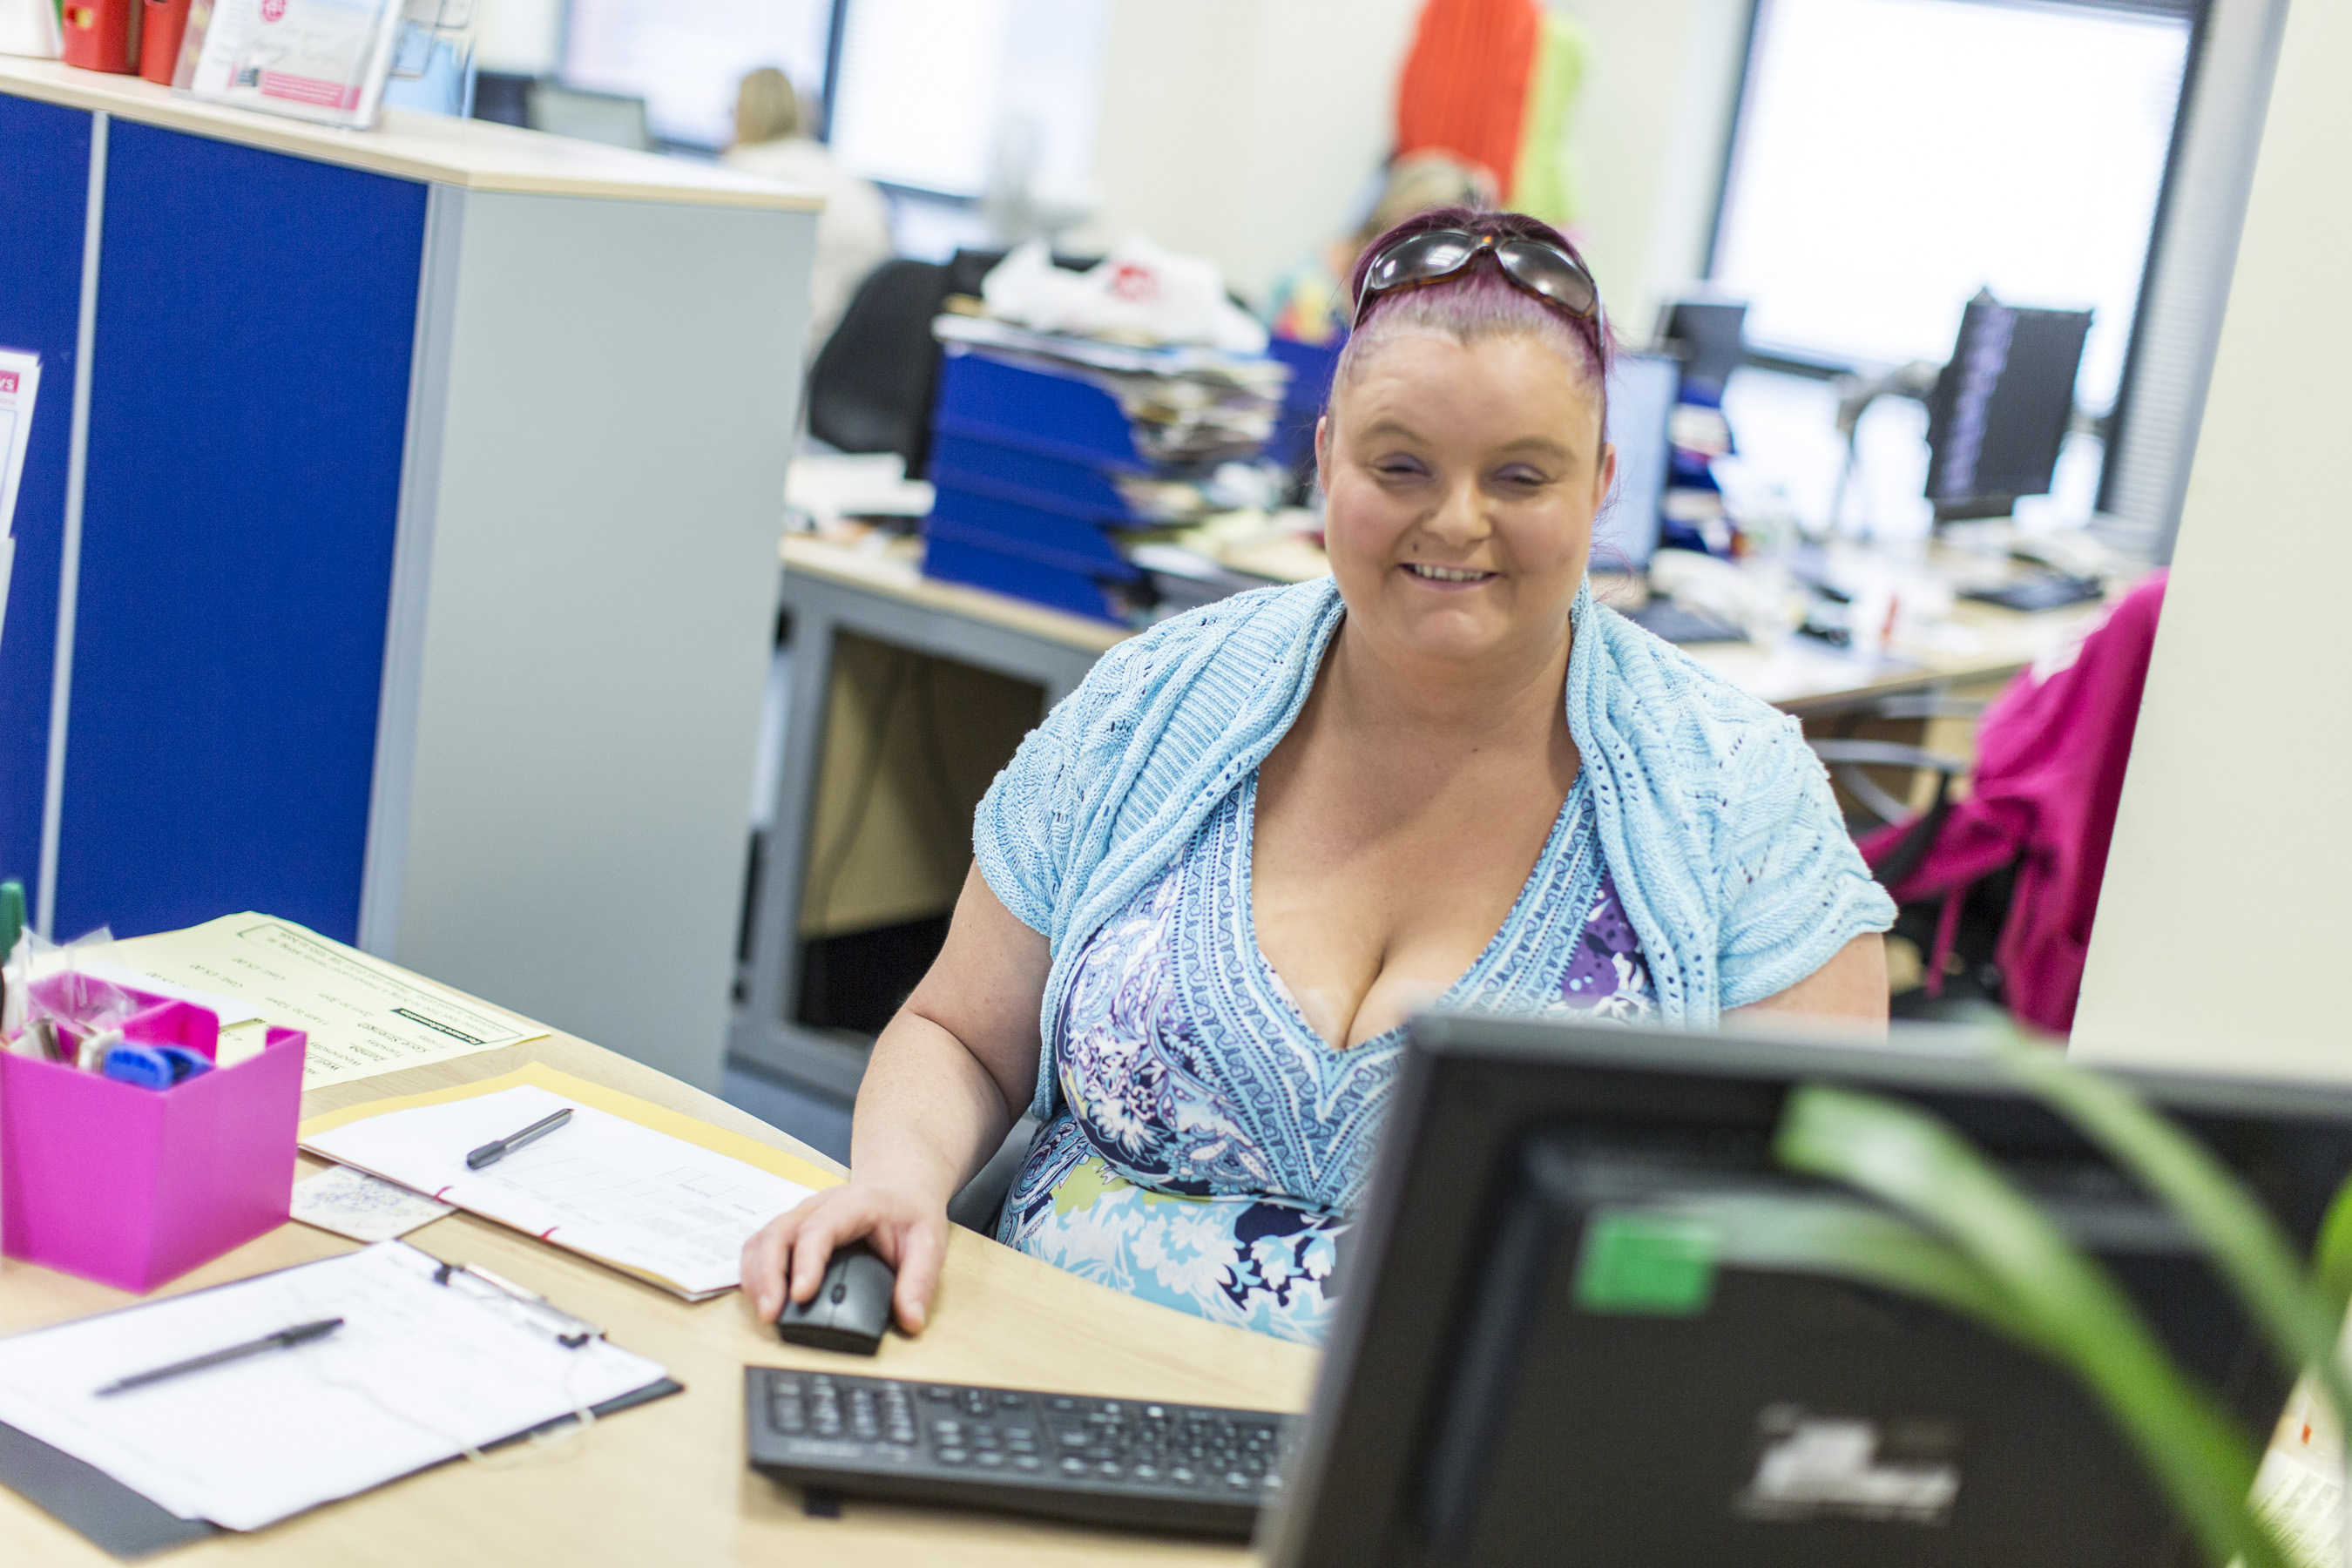 Jo sat at her desk in the Liverpool resource centre, working at the computer